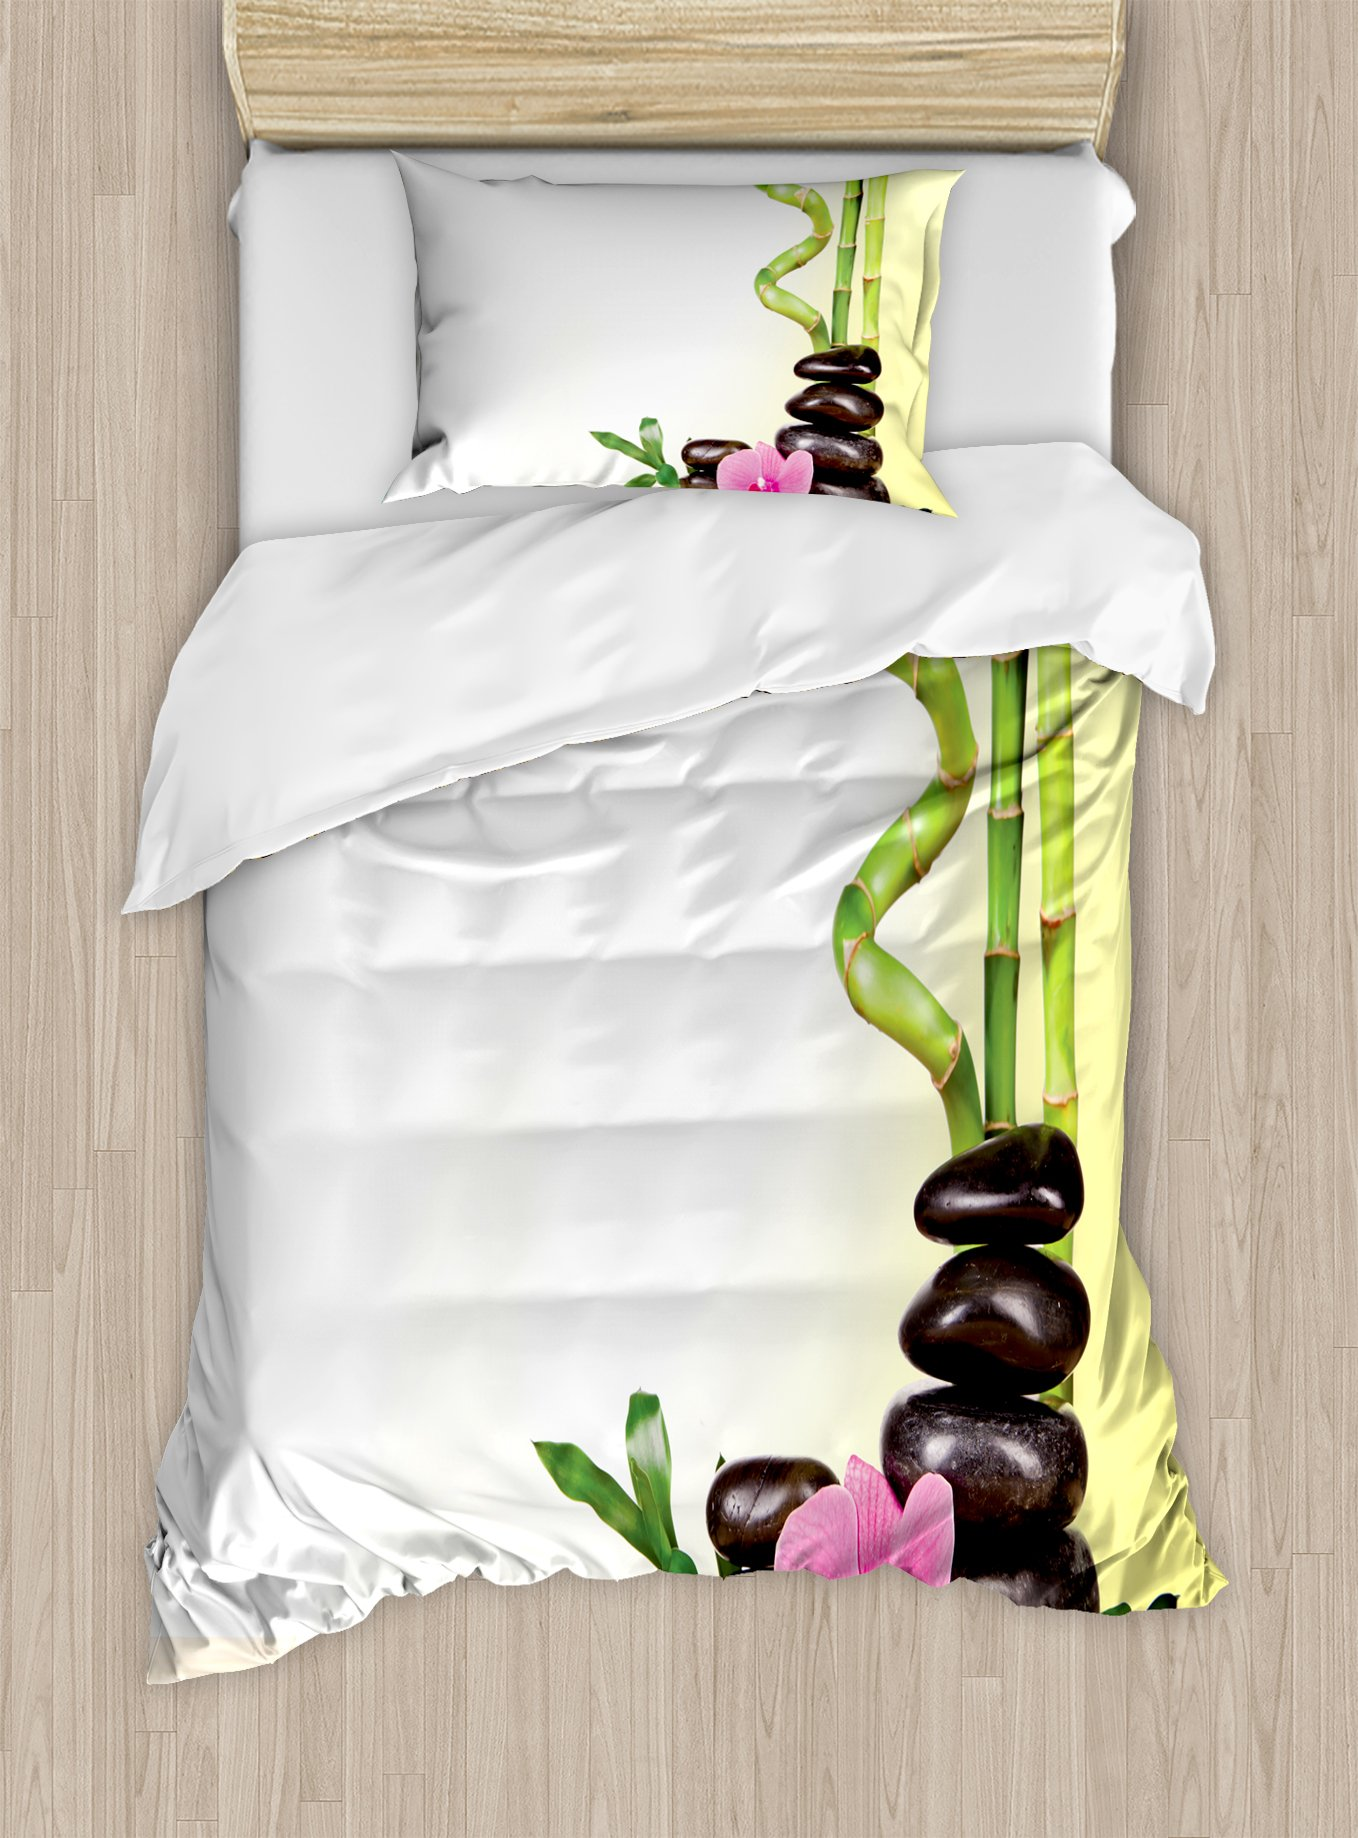 Ambesonne Spa Duvet Cover Set Twin Size, Calm Life Theme with Relax Symbol Bamboo Sprouts and Rocks Asian Meditative Zen Concept, Decorative 2 Piece Bedding Set with 1 Pillow Sham, Multicolor